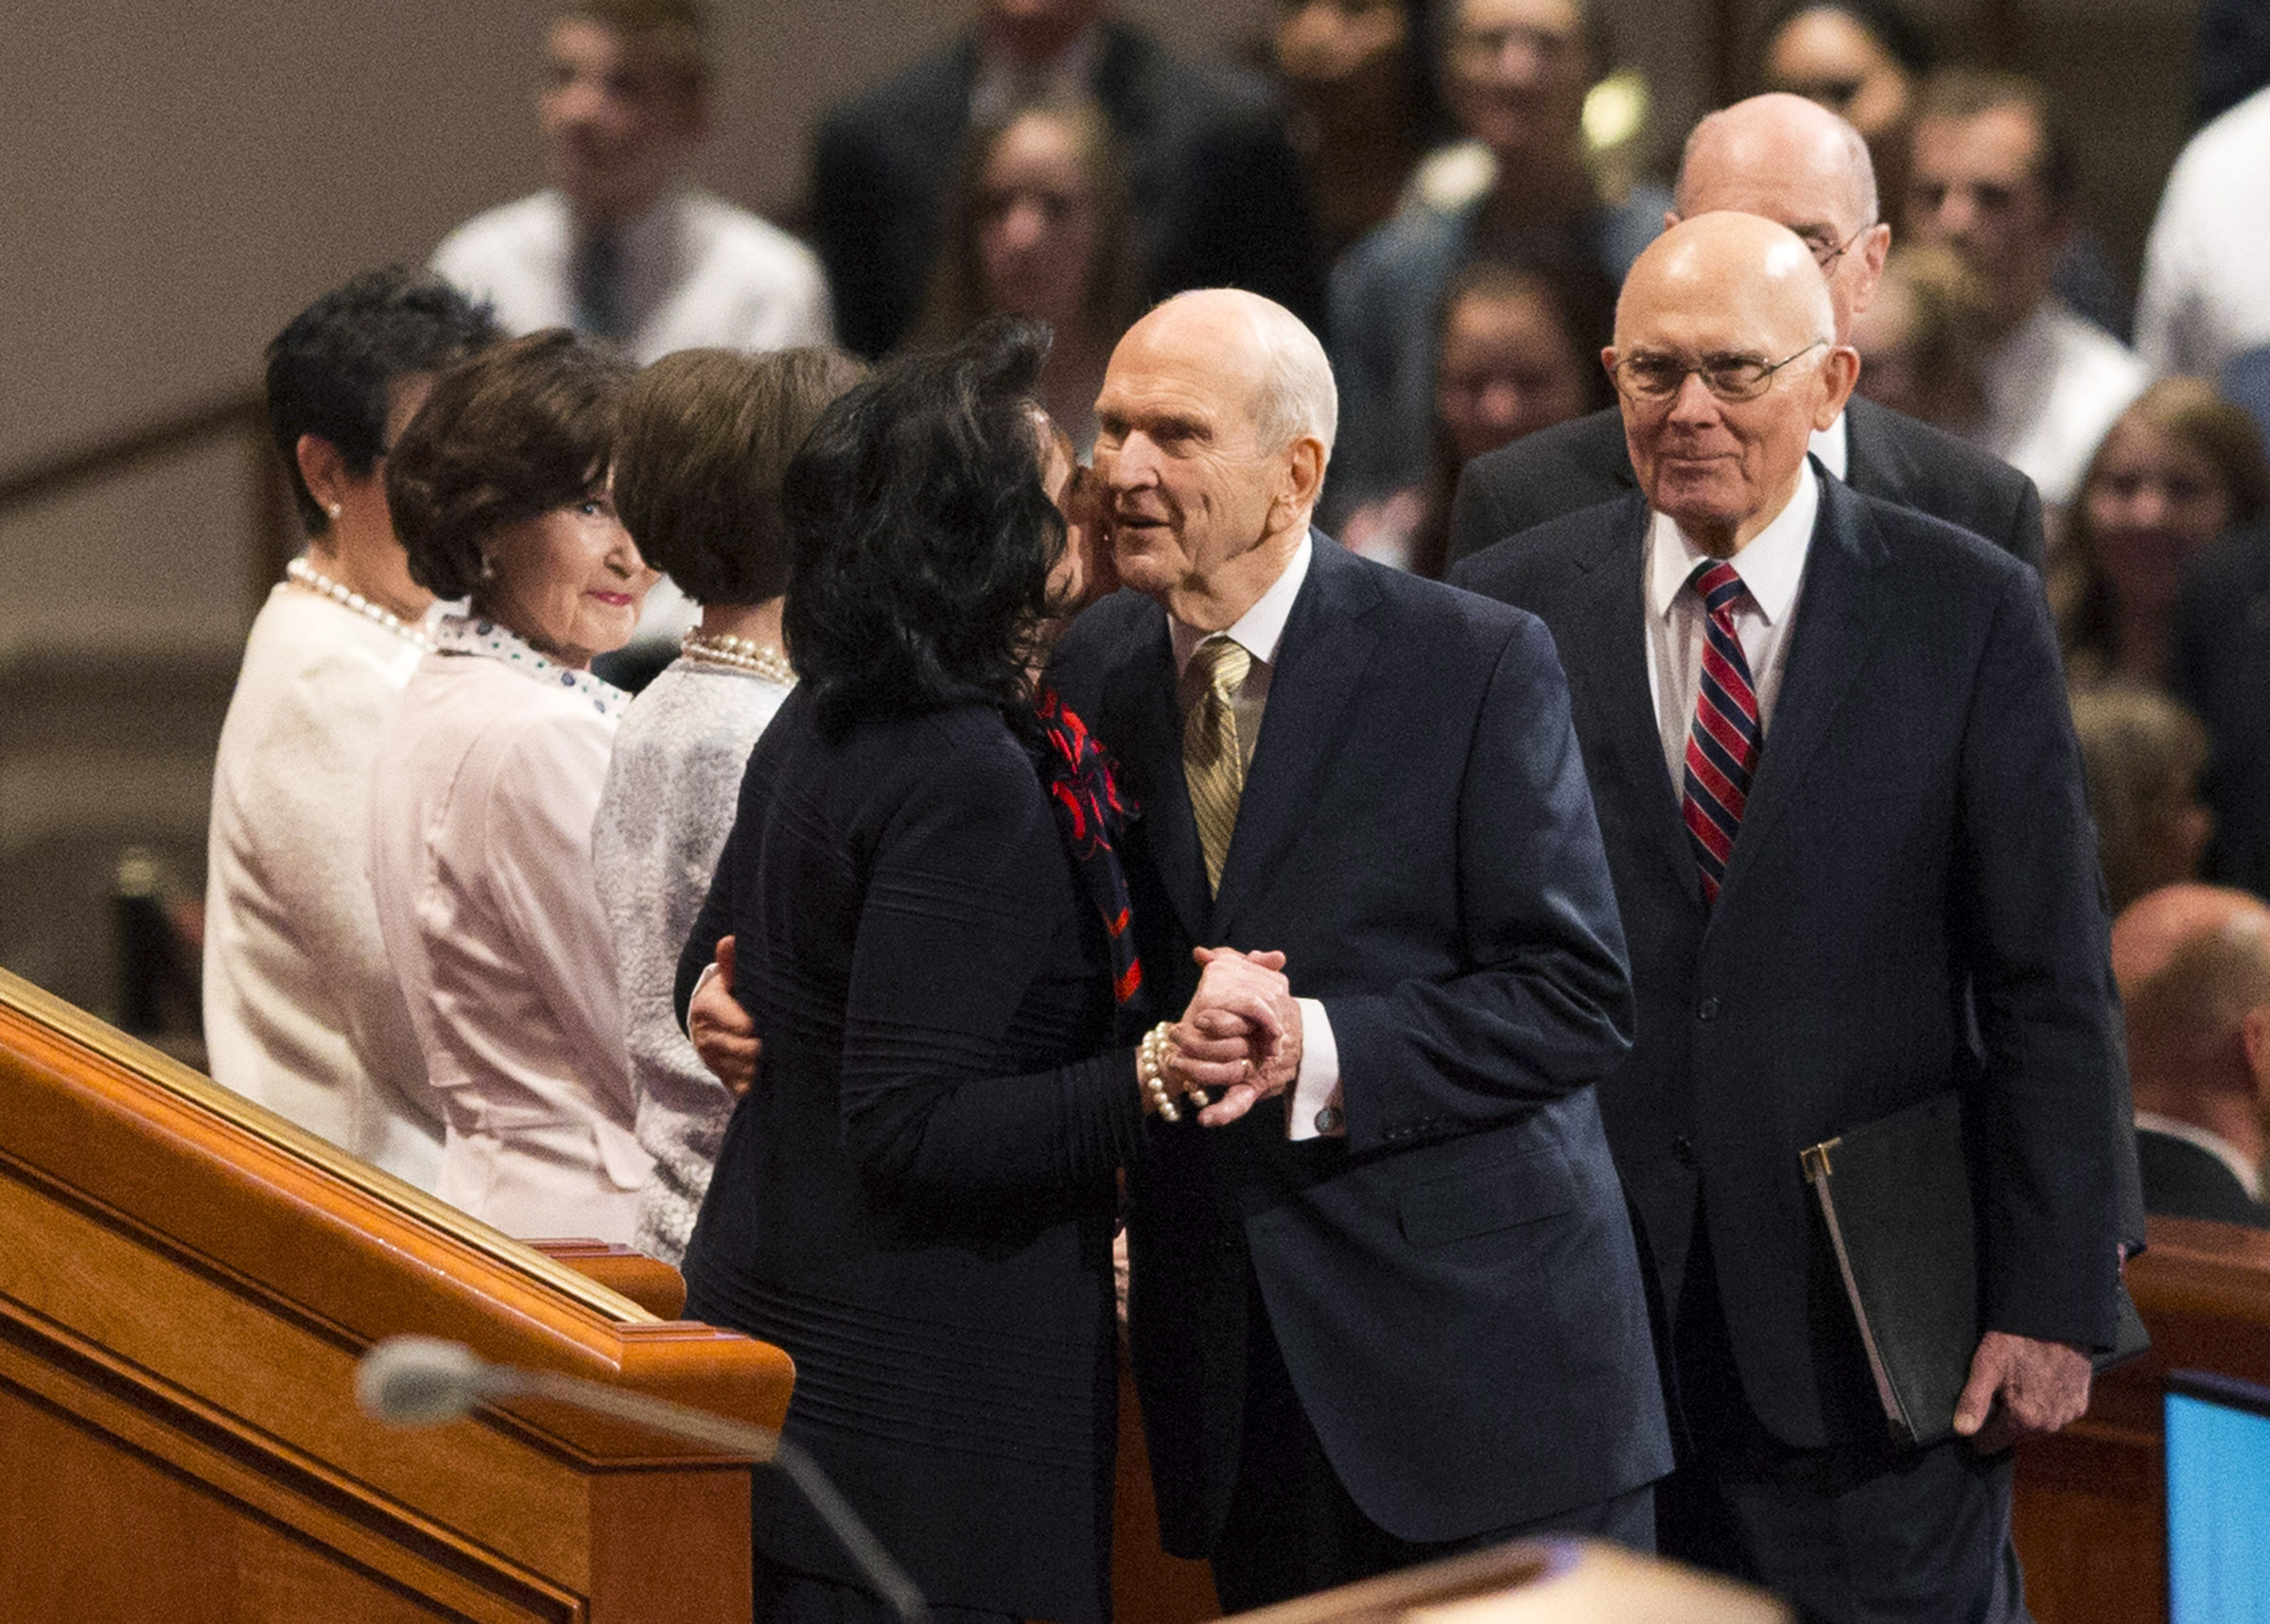 LDS Church President Russell M. Nelson greets his wife, Sister Wendy Watson Nelson, prior to the Sunday afternoon session of the 188th Annual General Conference of The Church of Jesus Christ of Latter-day Saints, in the Conference Center in Salt Lake City on Sunday, April 1, 2018.